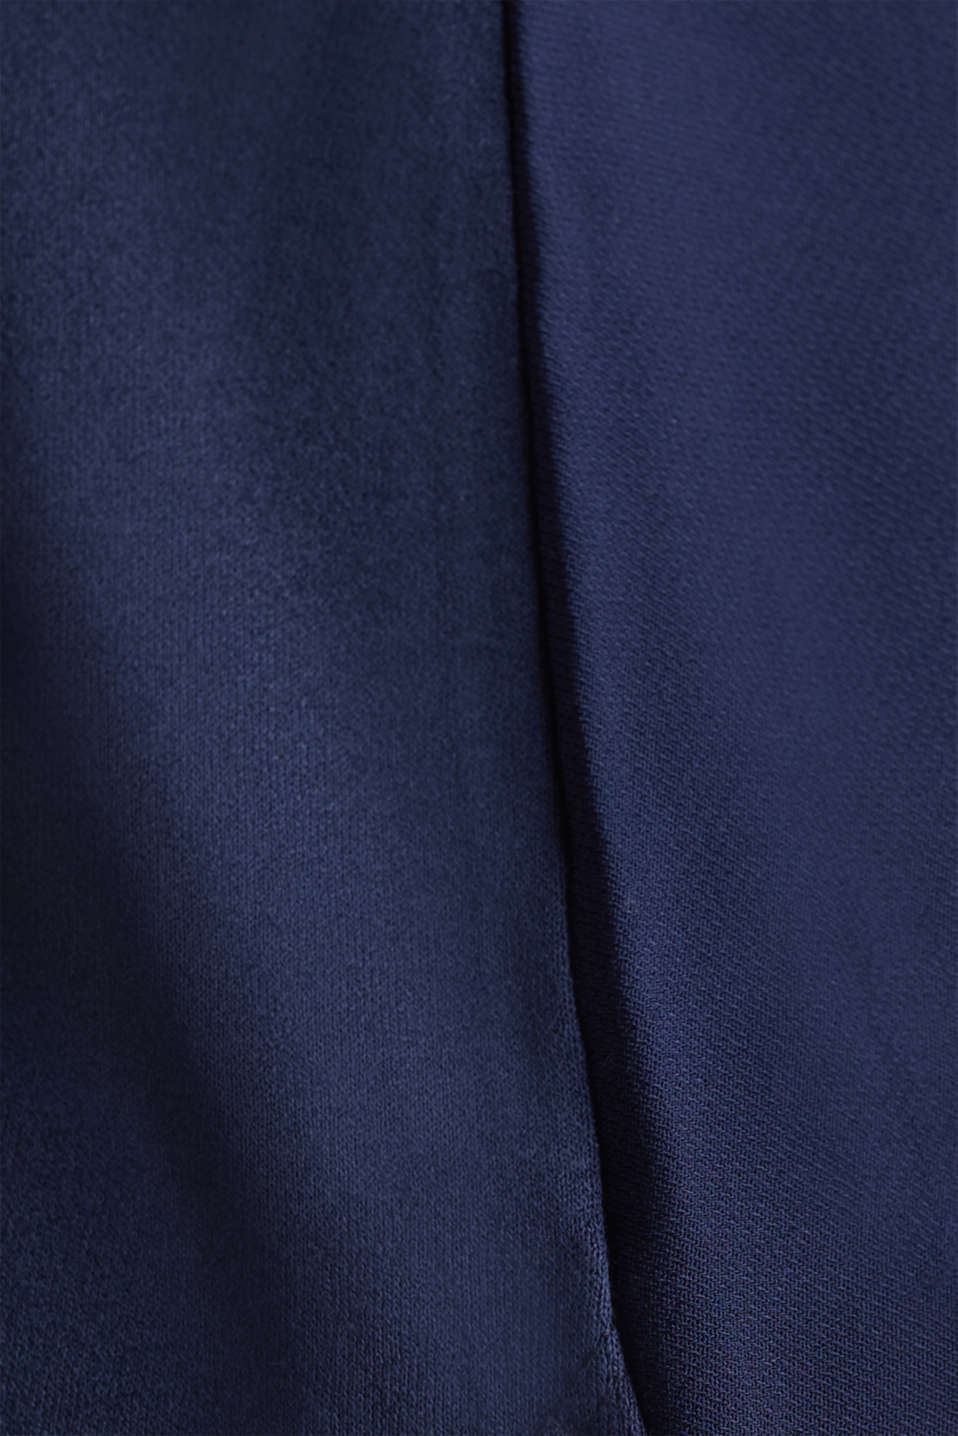 Blousy T-shirt in a material mix, NAVY, detail image number 4